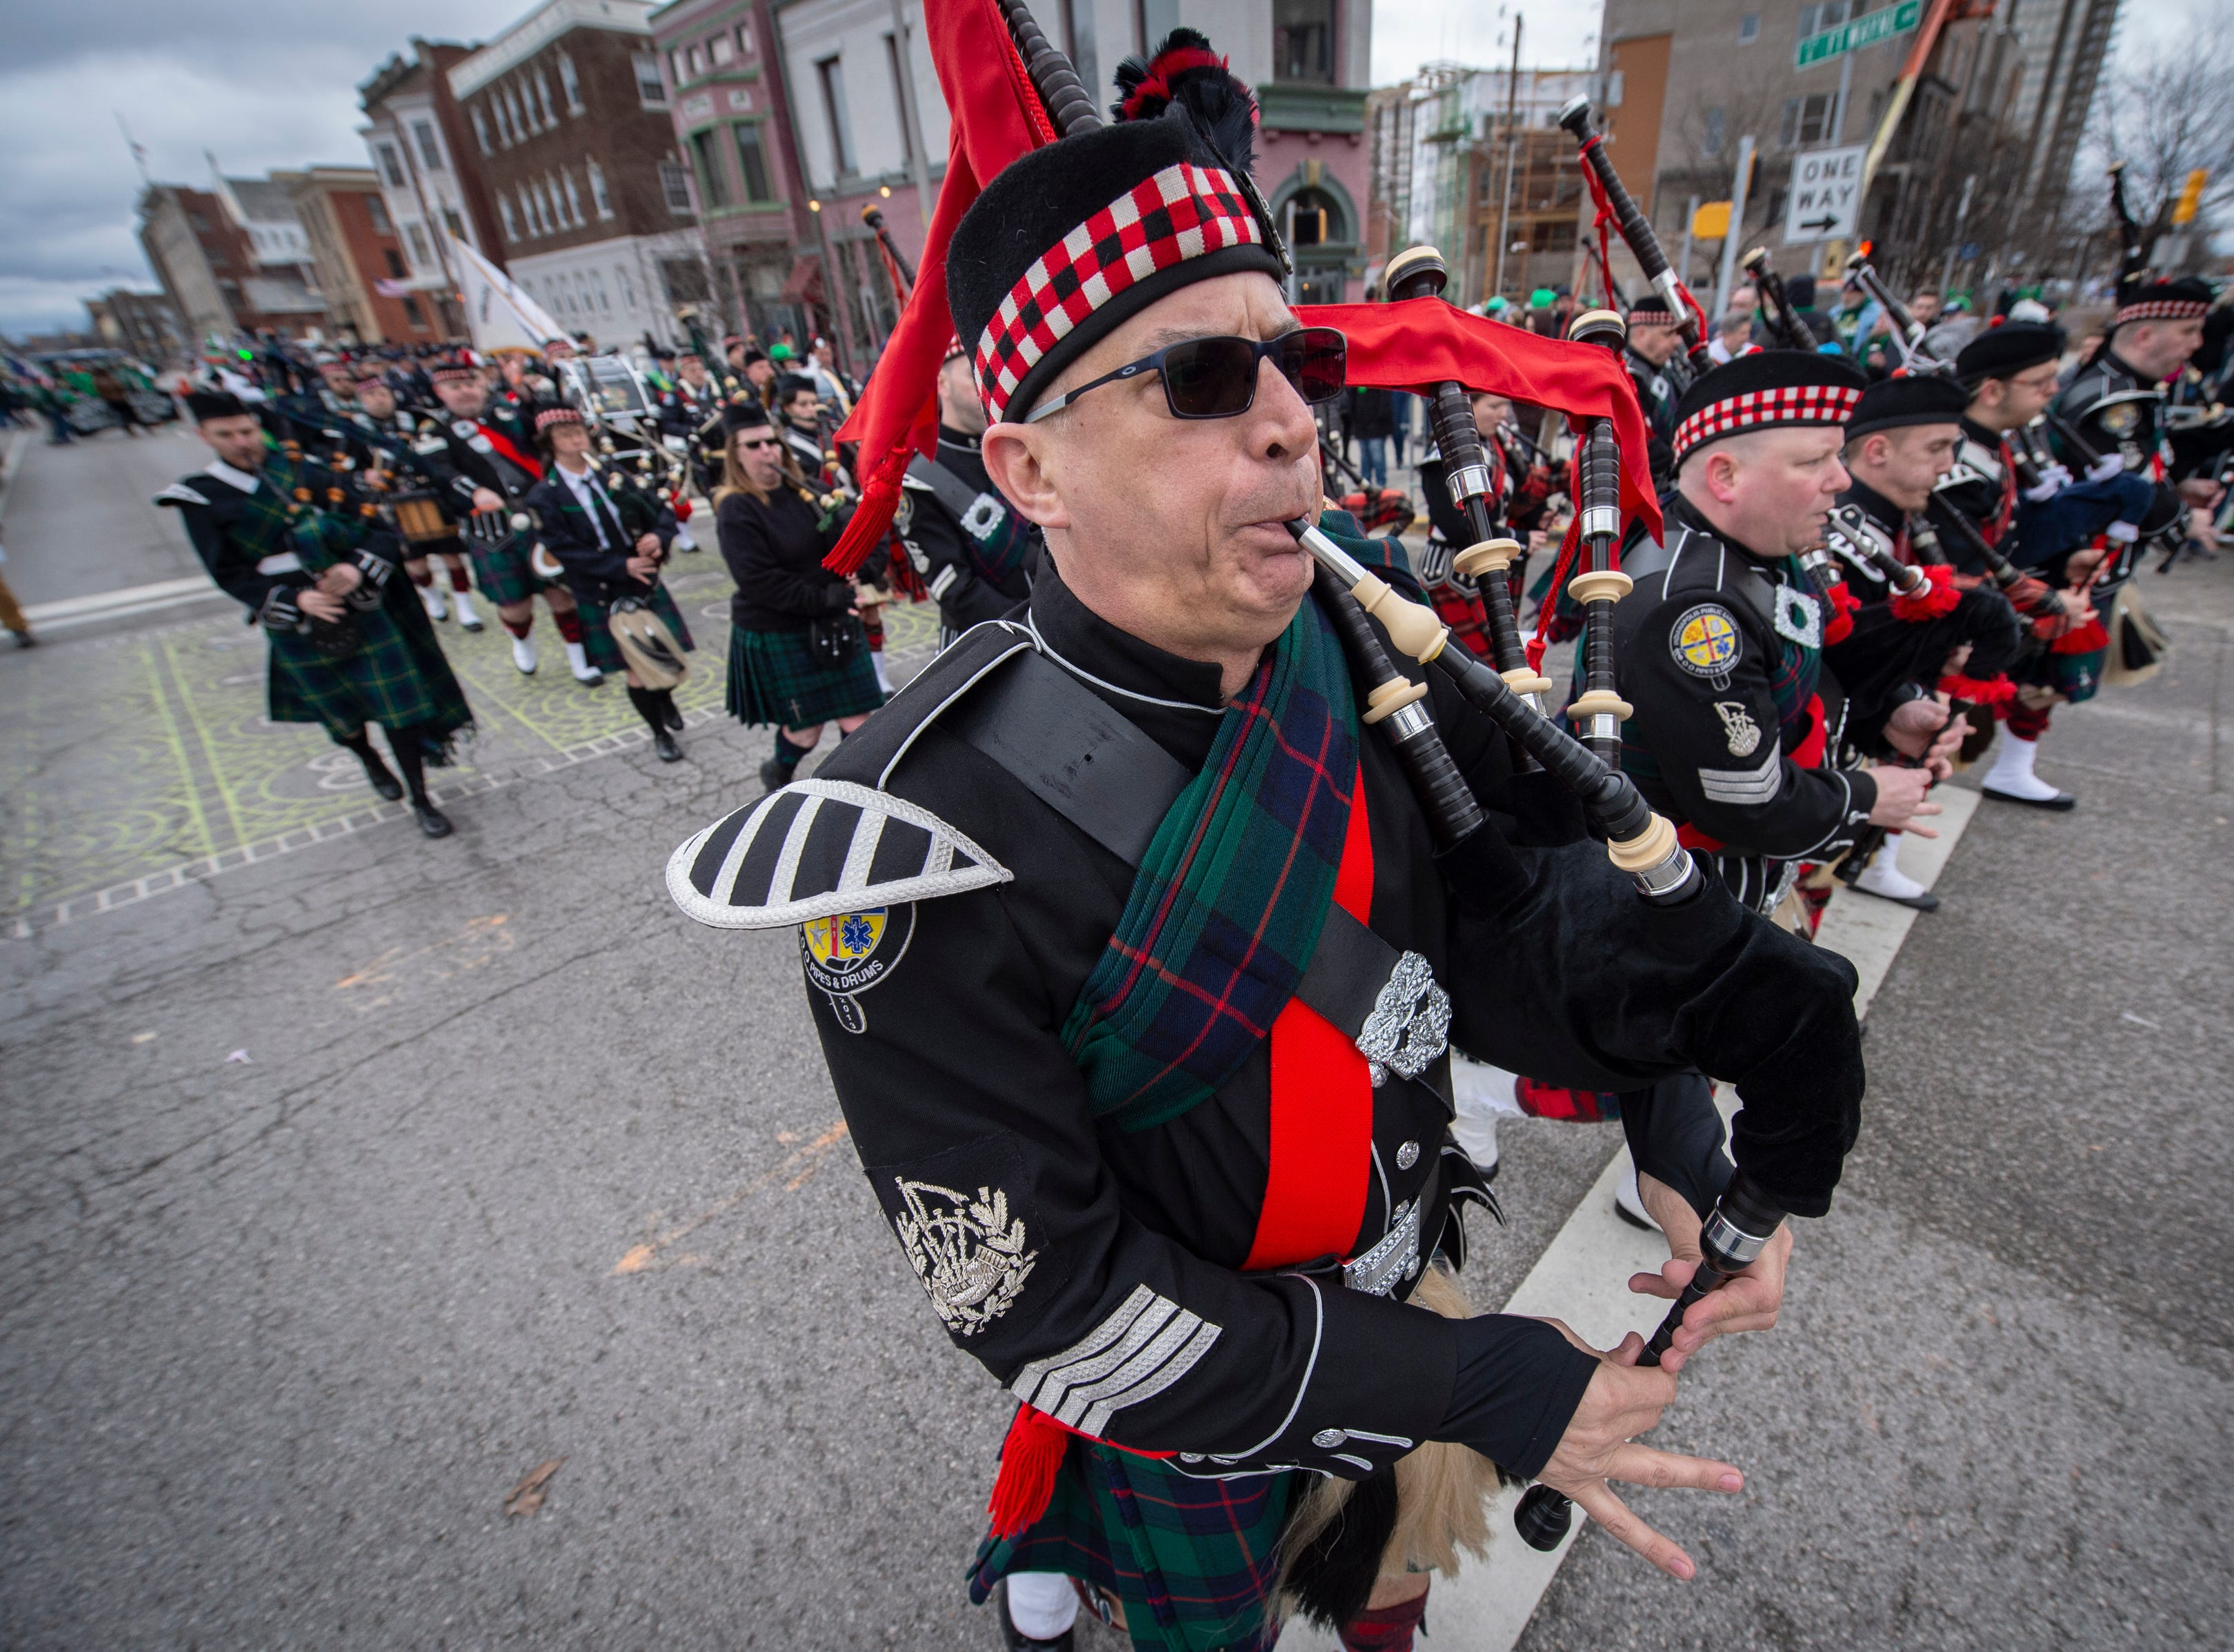 The Indianapolis Public Safety Pipes and Drums unit perform along the parade route. The 39th annual St. Patrick's Day Parade navigated the streets of Indianapolis, Friday, March 15, 2019.